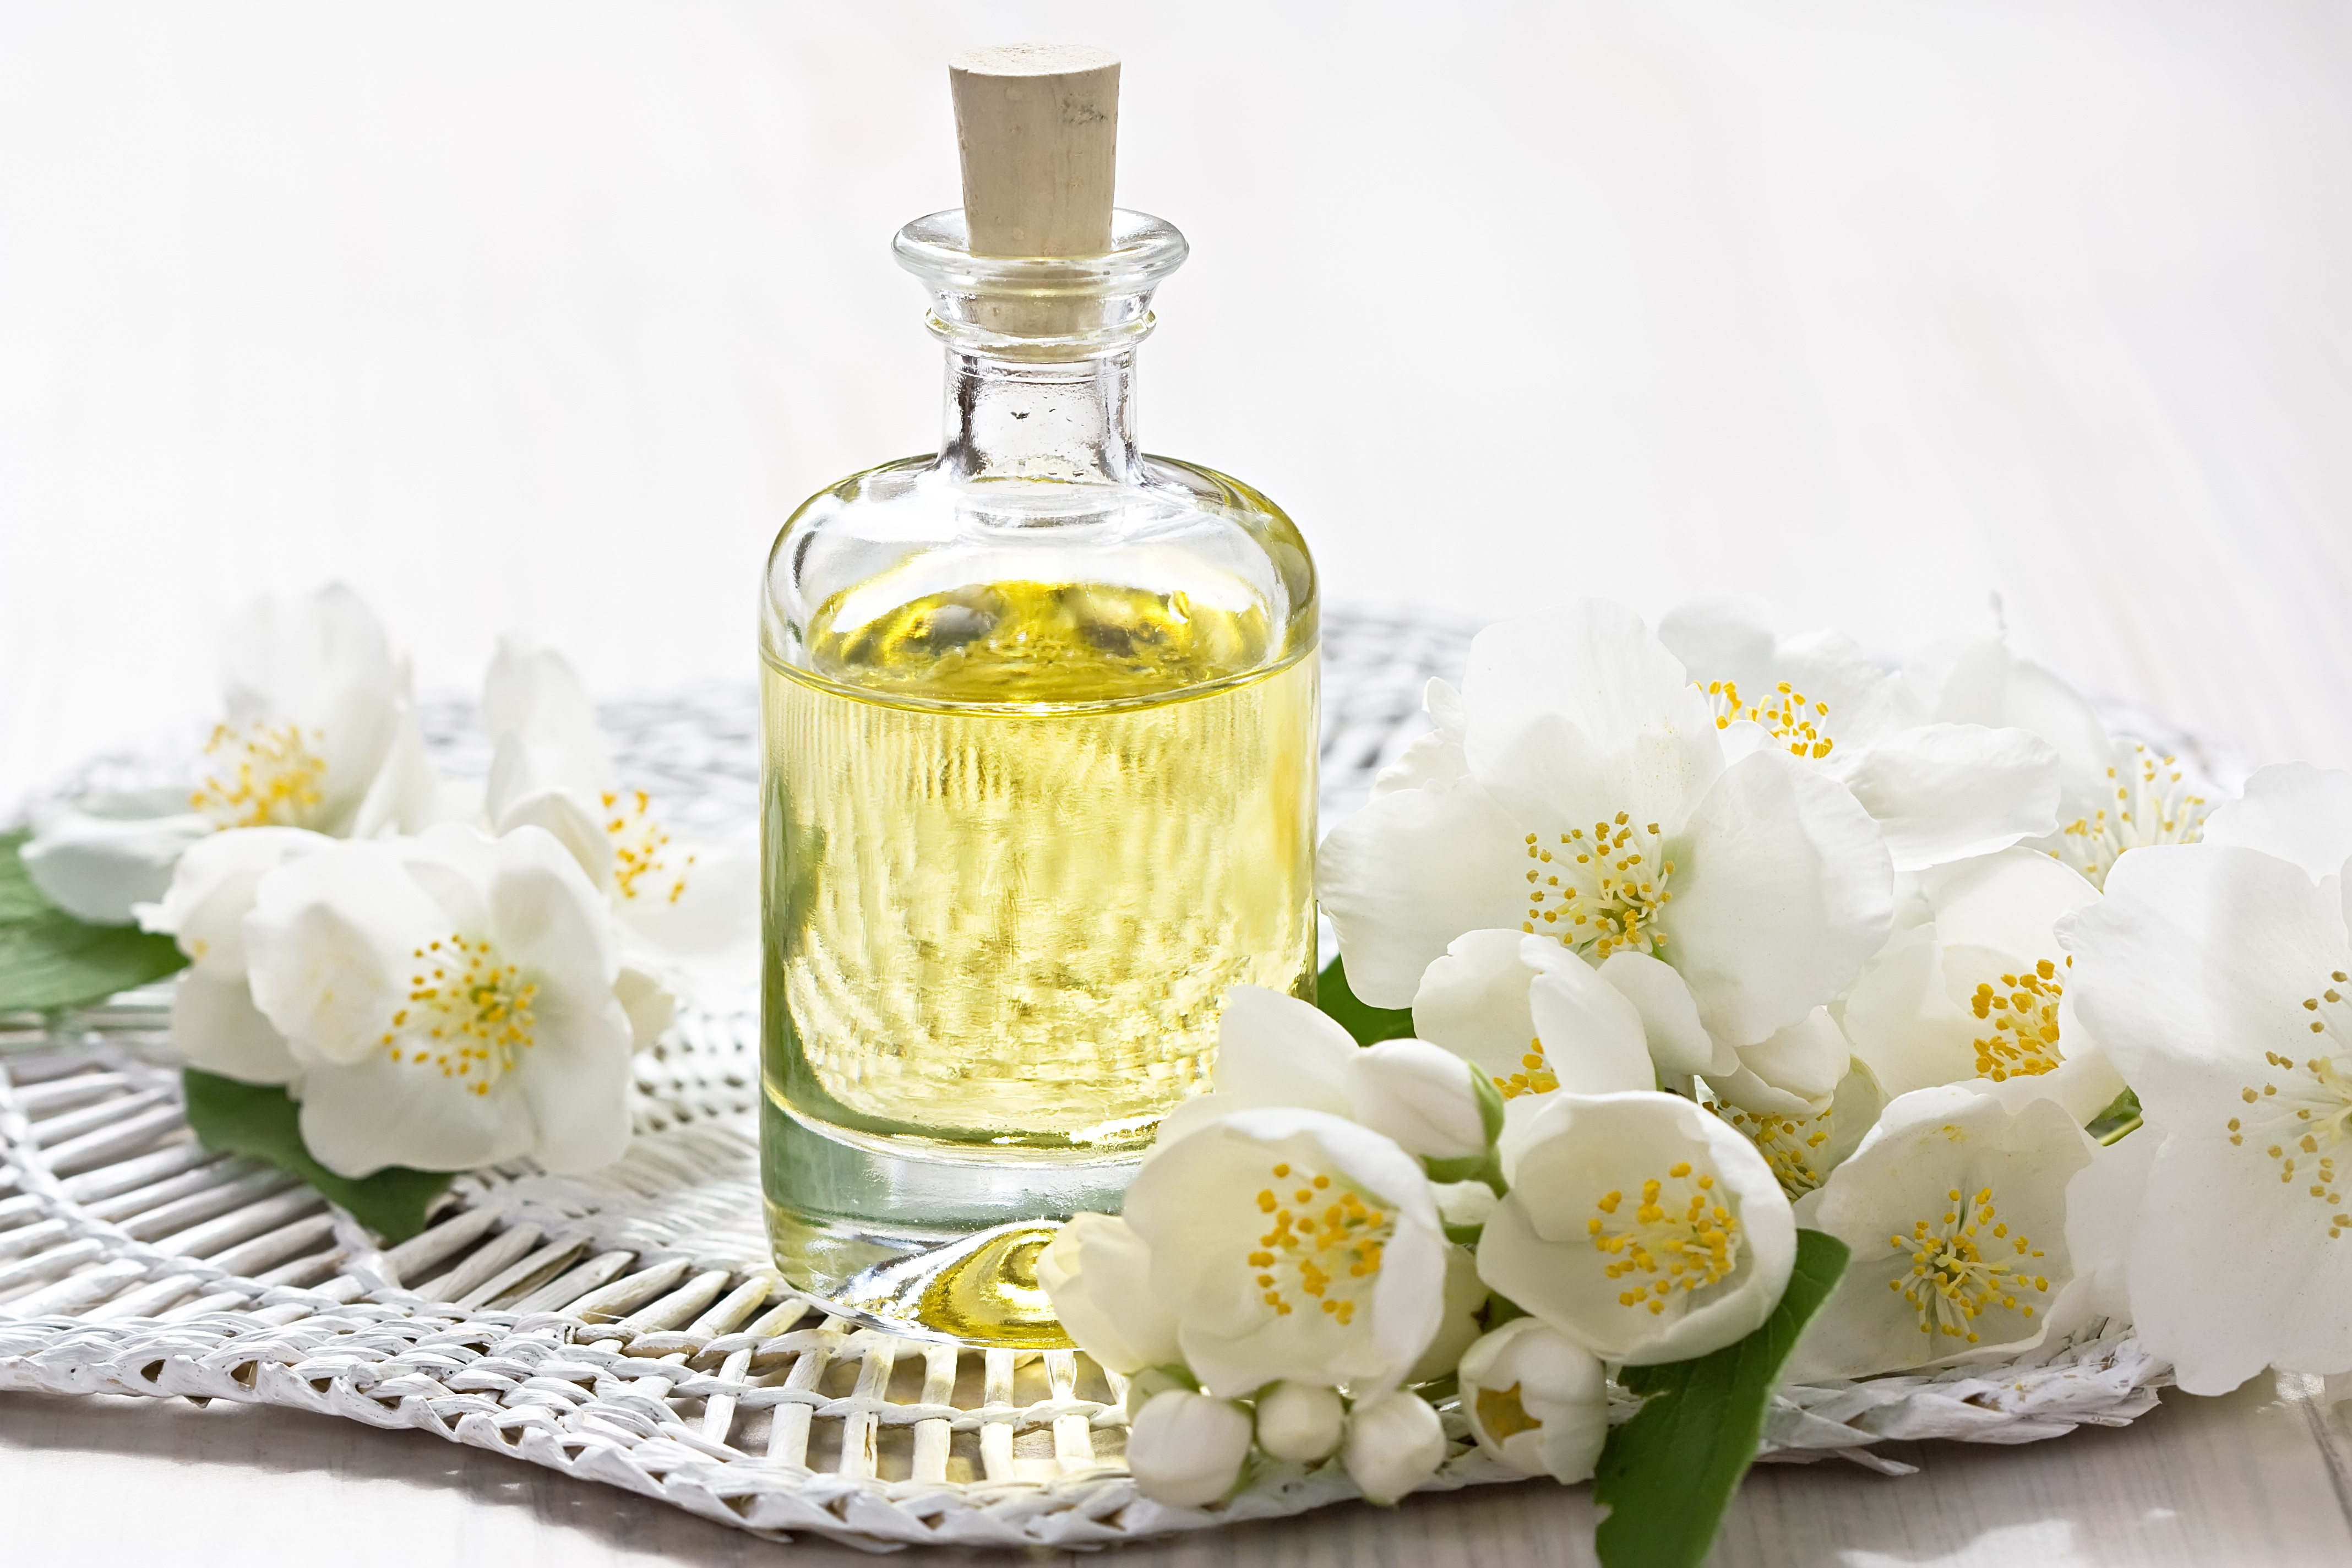 Best quality natural essential oils including Neroli Essential Oil - Reconstitution Neroli Oil and other fragrance & perfume oils at the most discount rates by BMV Fragrances in UP, India.